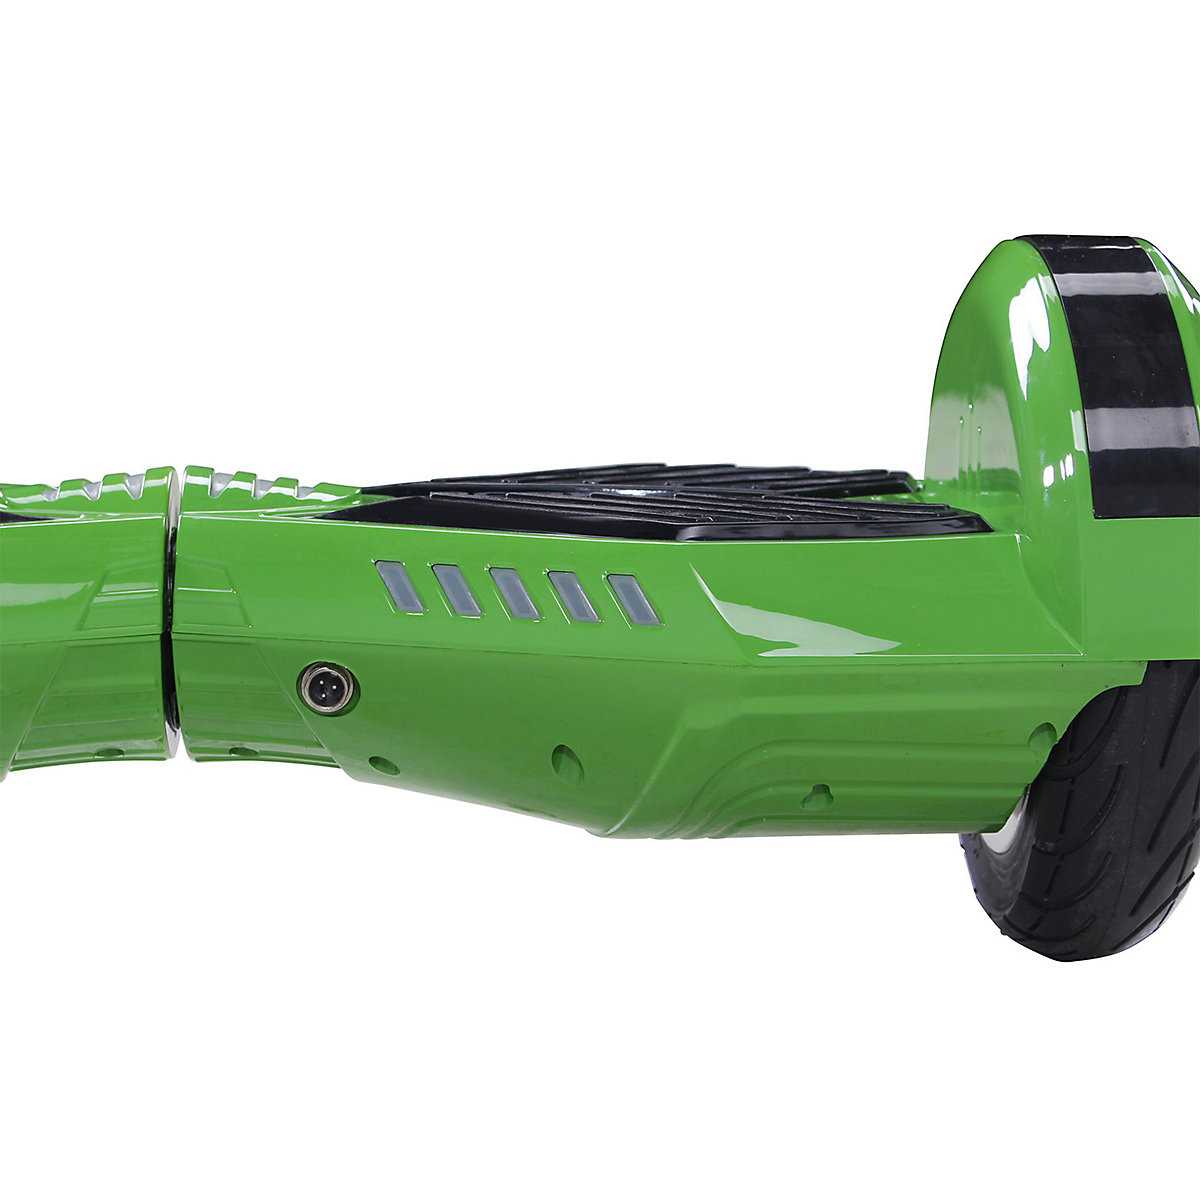 e balance hoverboard robway w2 8 zoll mit app funktion gr n robway mytoys. Black Bedroom Furniture Sets. Home Design Ideas